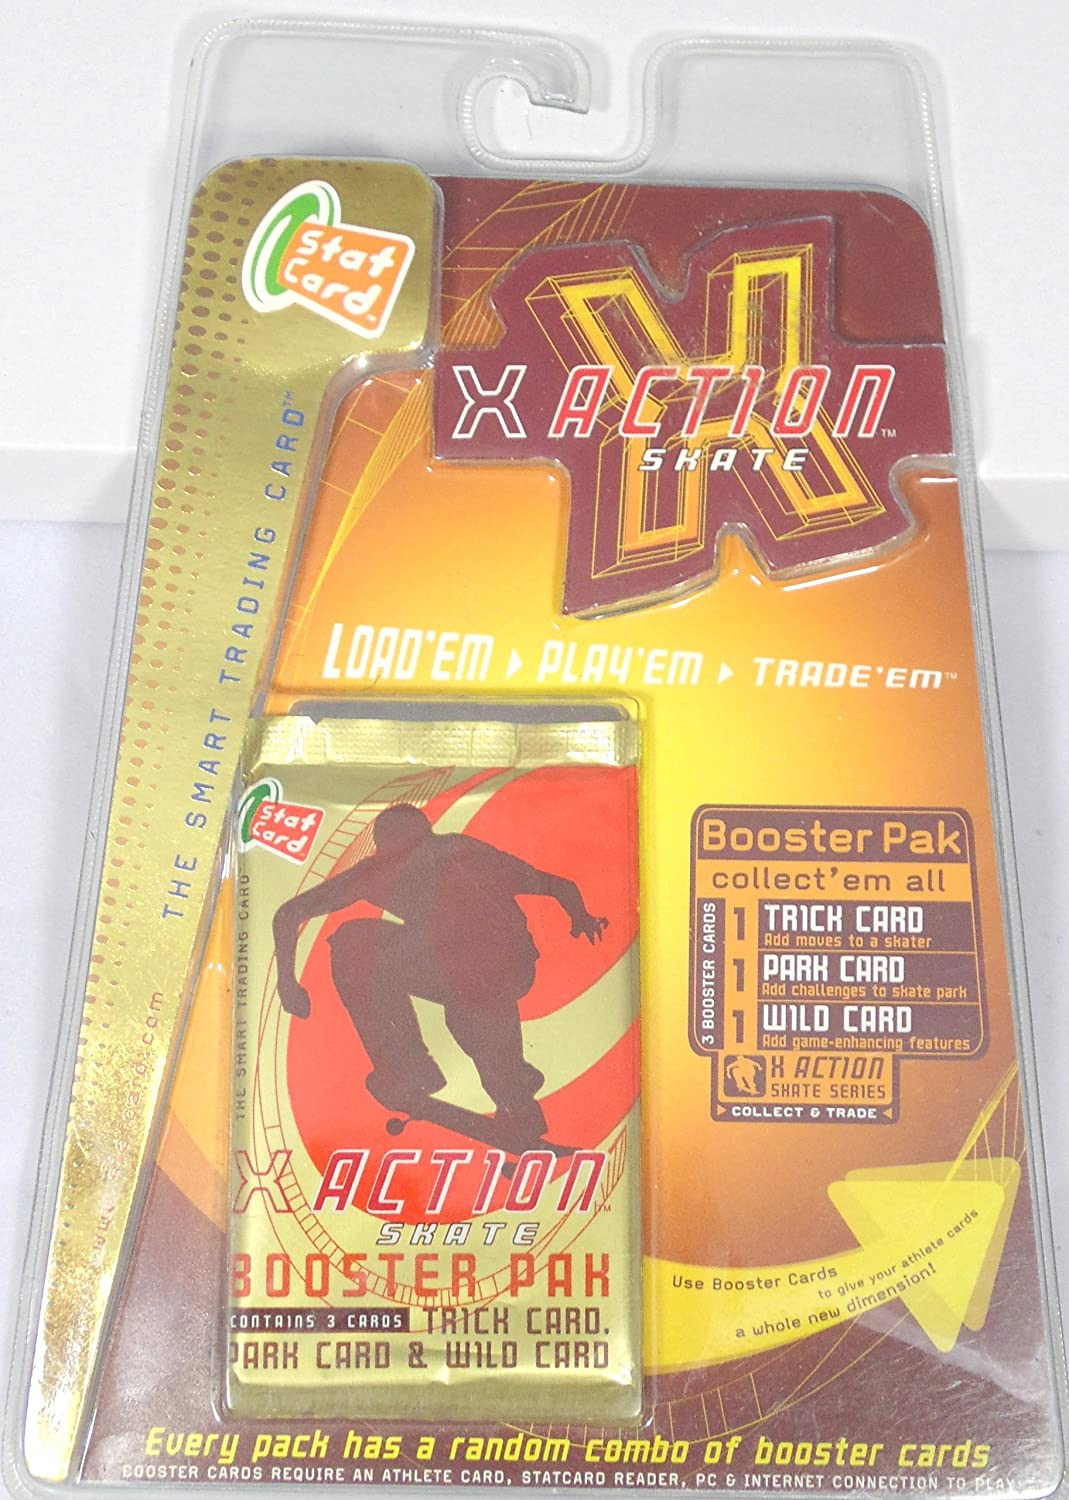 Set of 3 X Action Skateboarding Stat Card Booster Pak Trading Cards